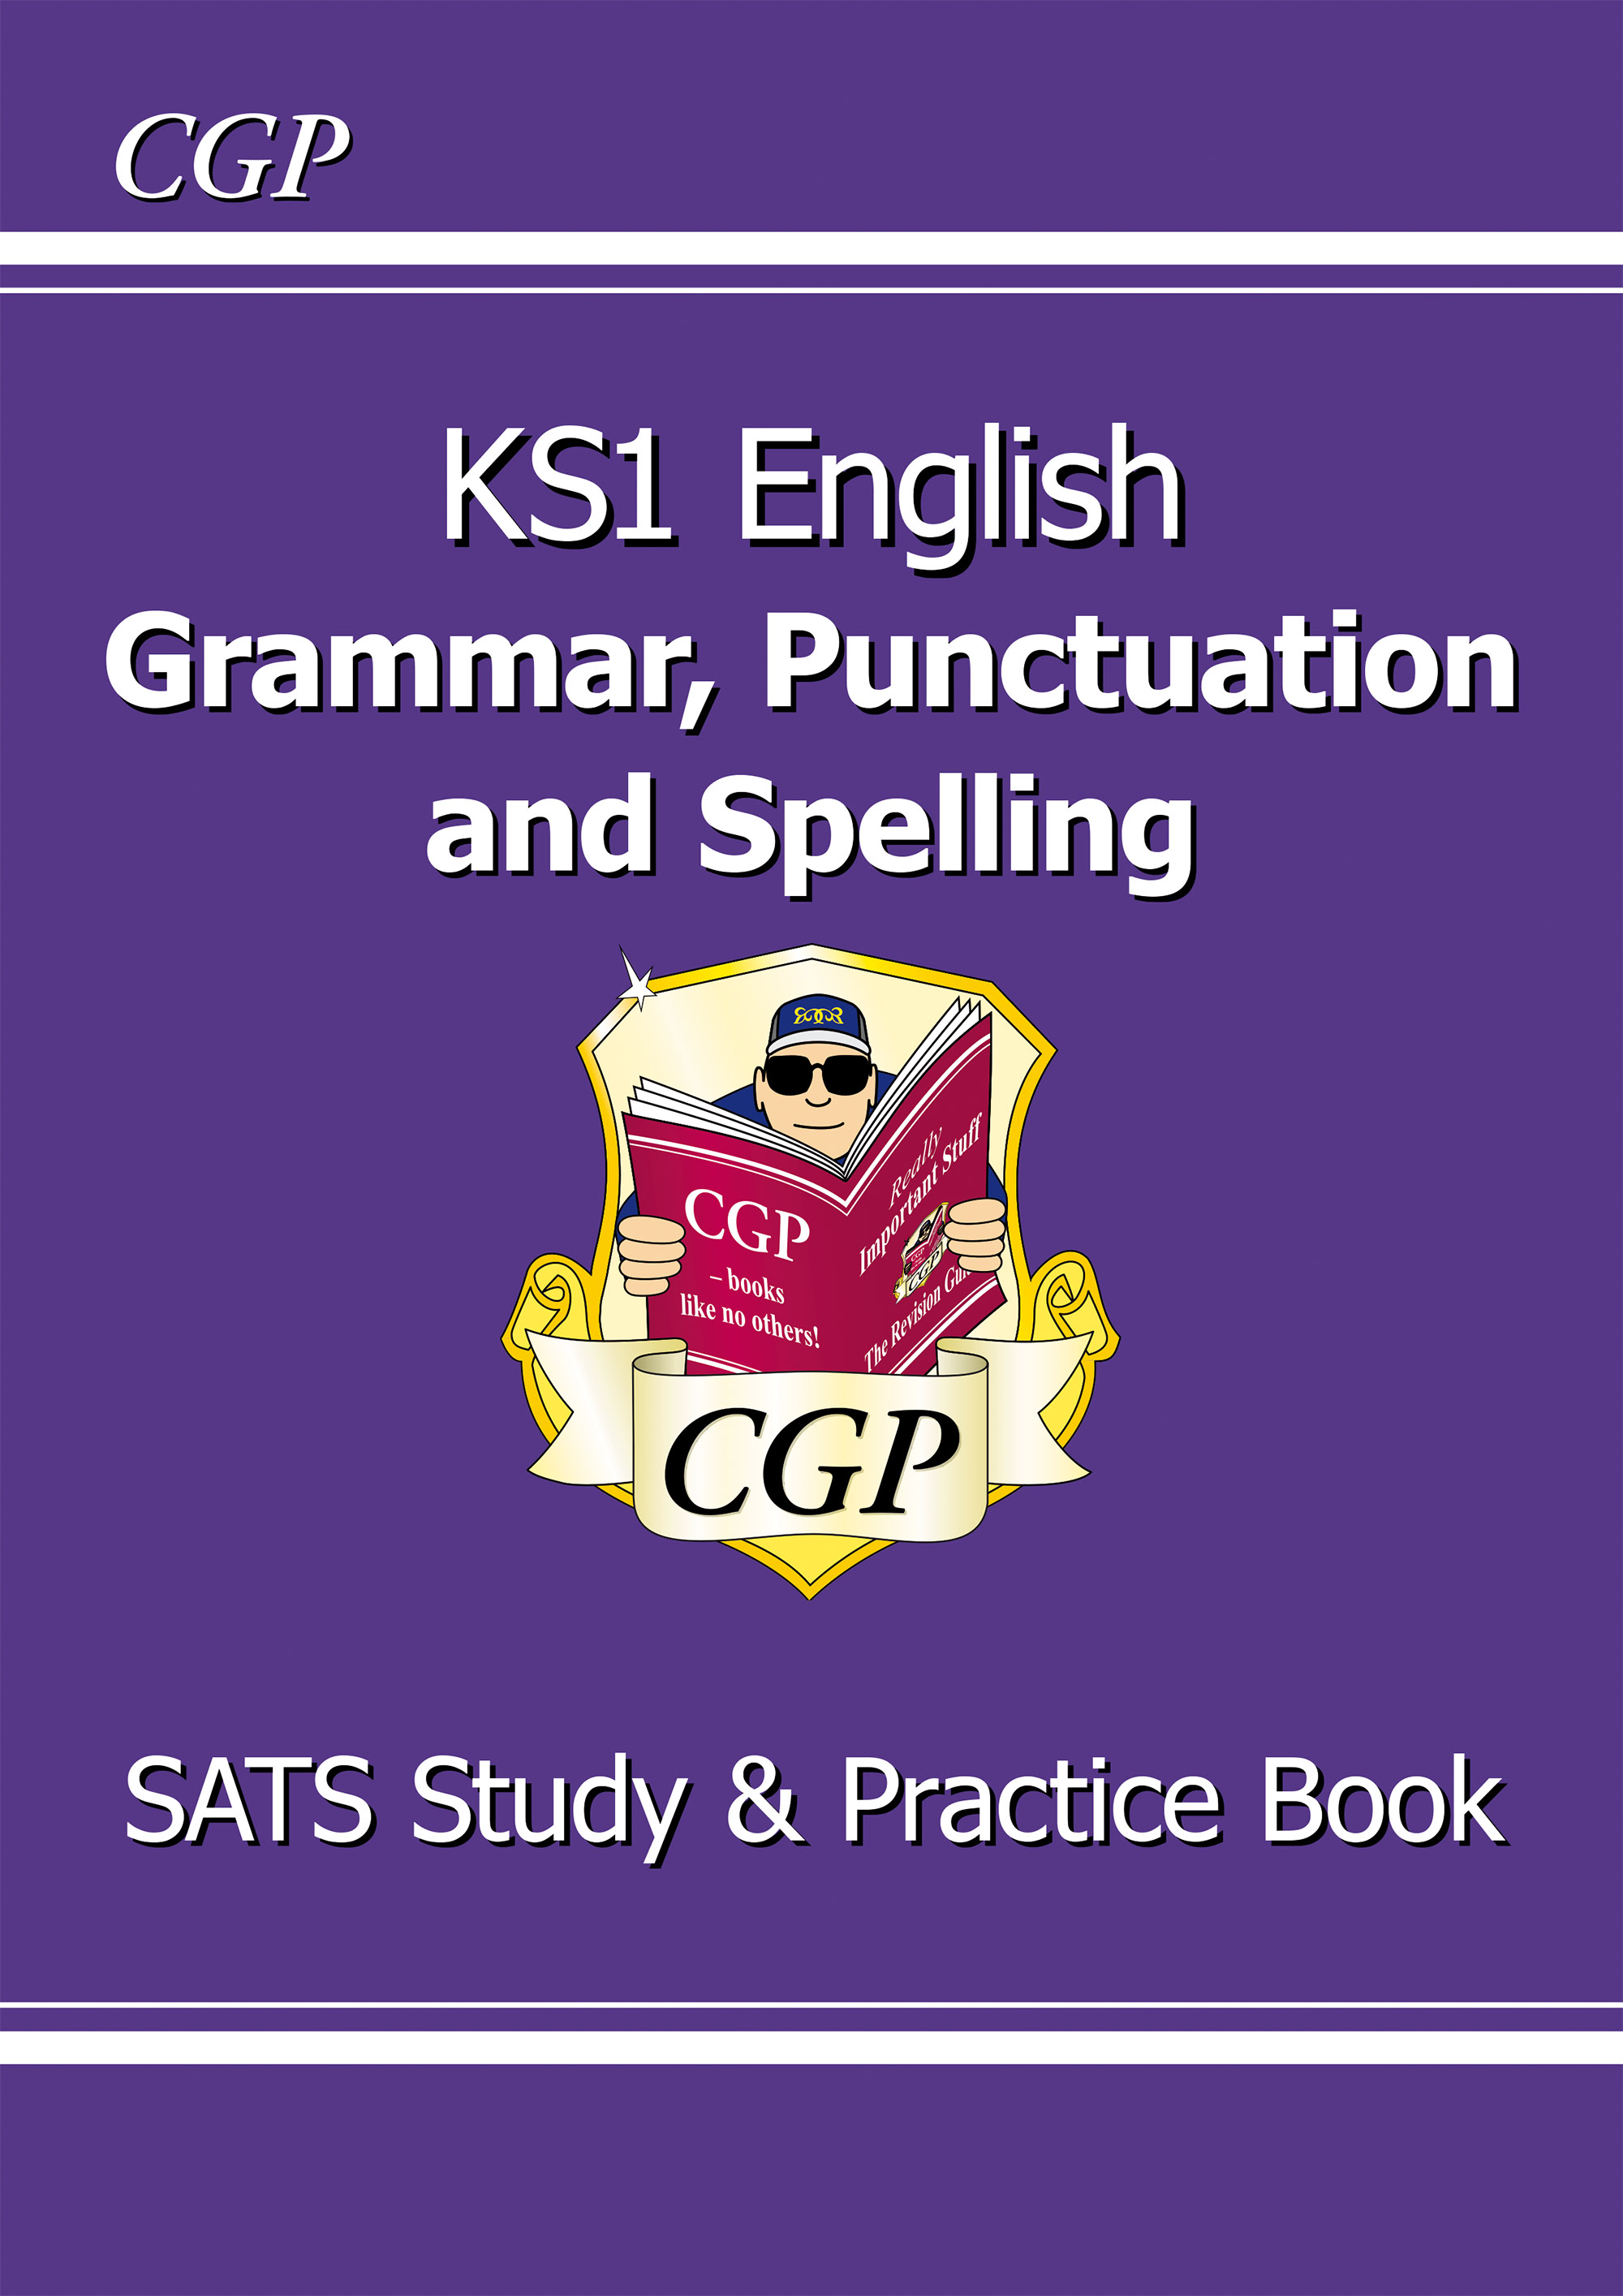 EGR11DK - KS1 English Grammar, Punctuation & Spelling Study & Practice Book